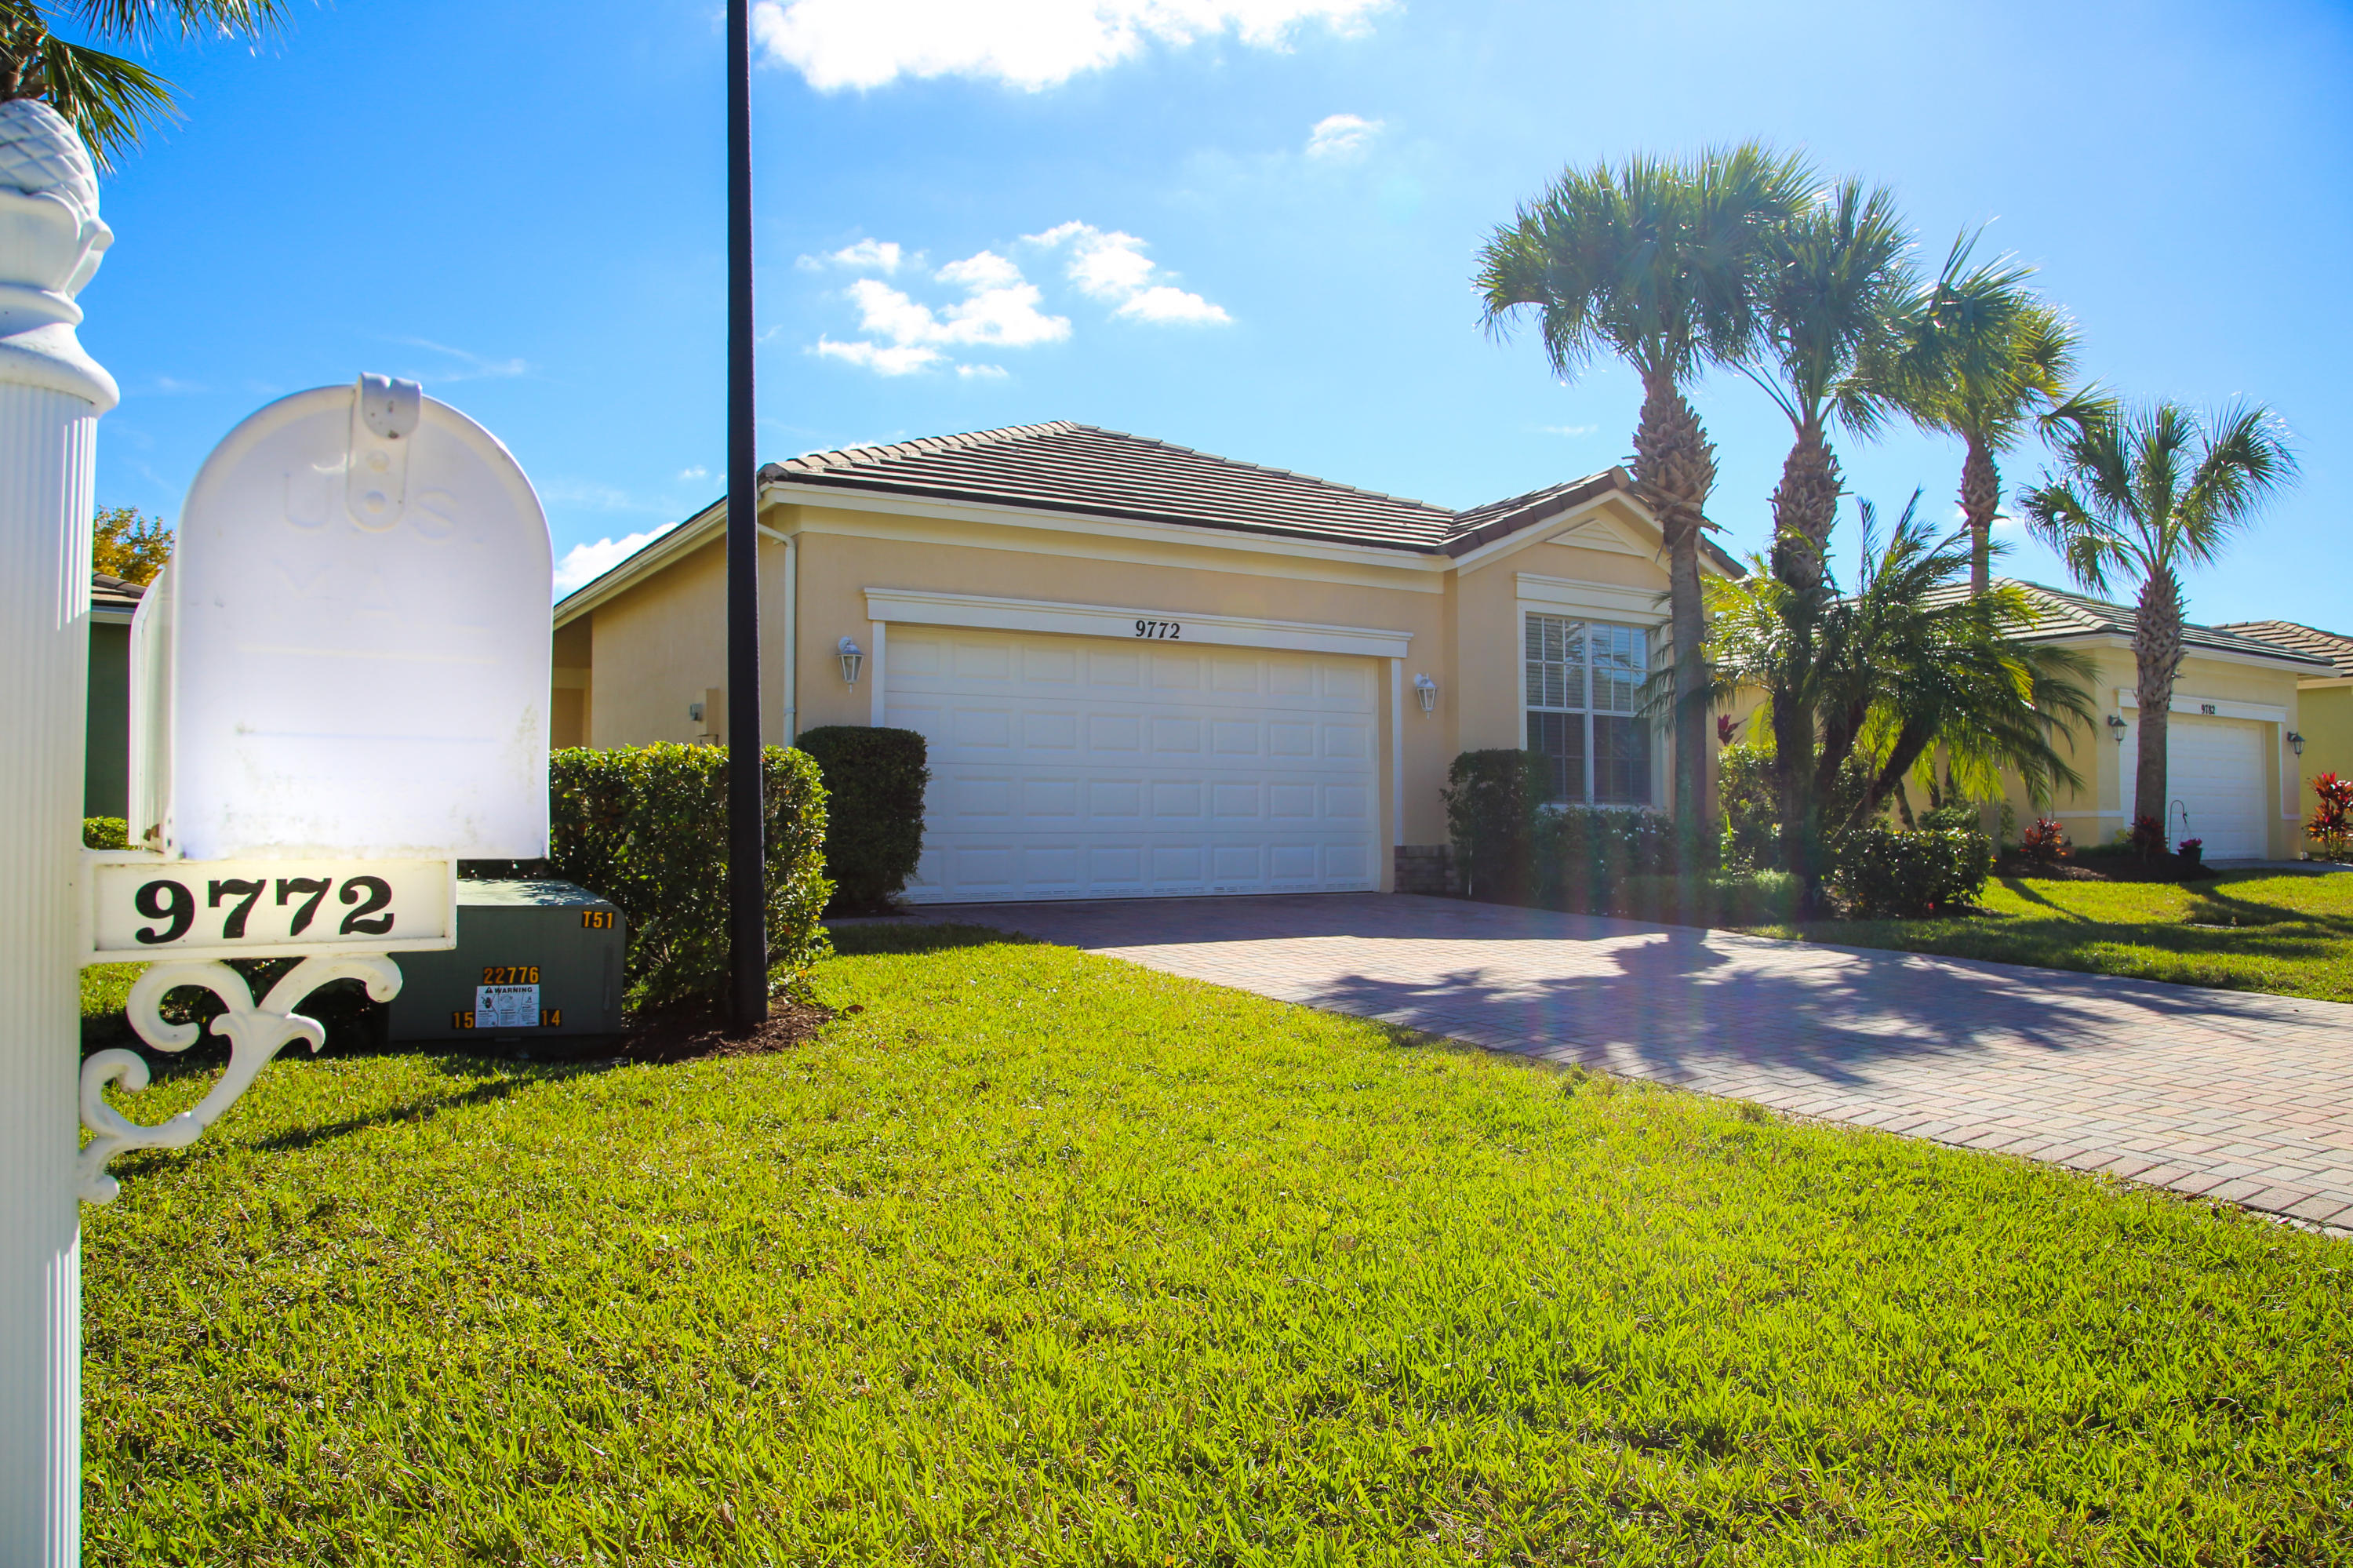 Beautiful 3 bedroom/ 2 bathroom hoe in Heritage Oaks section of Traditions. This home boast new rugs in all bedrooms, tile throughout common areas, white kitchen appliance package, white washer and dryer. Paver driveway and walkway. Priced to sell quickly. All measurements are approximate.